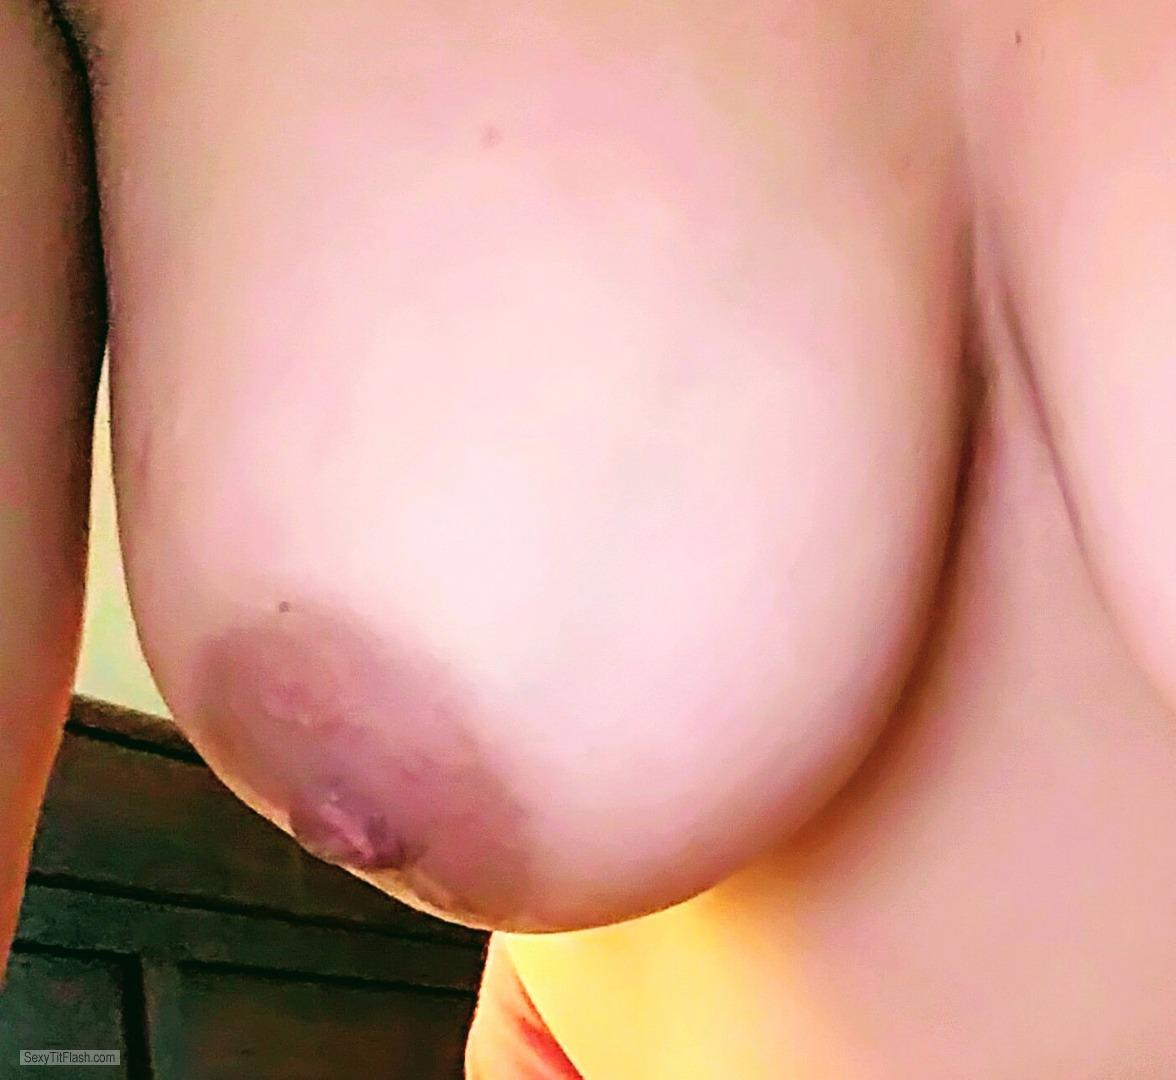 My Big Tits Selfie by J.m.